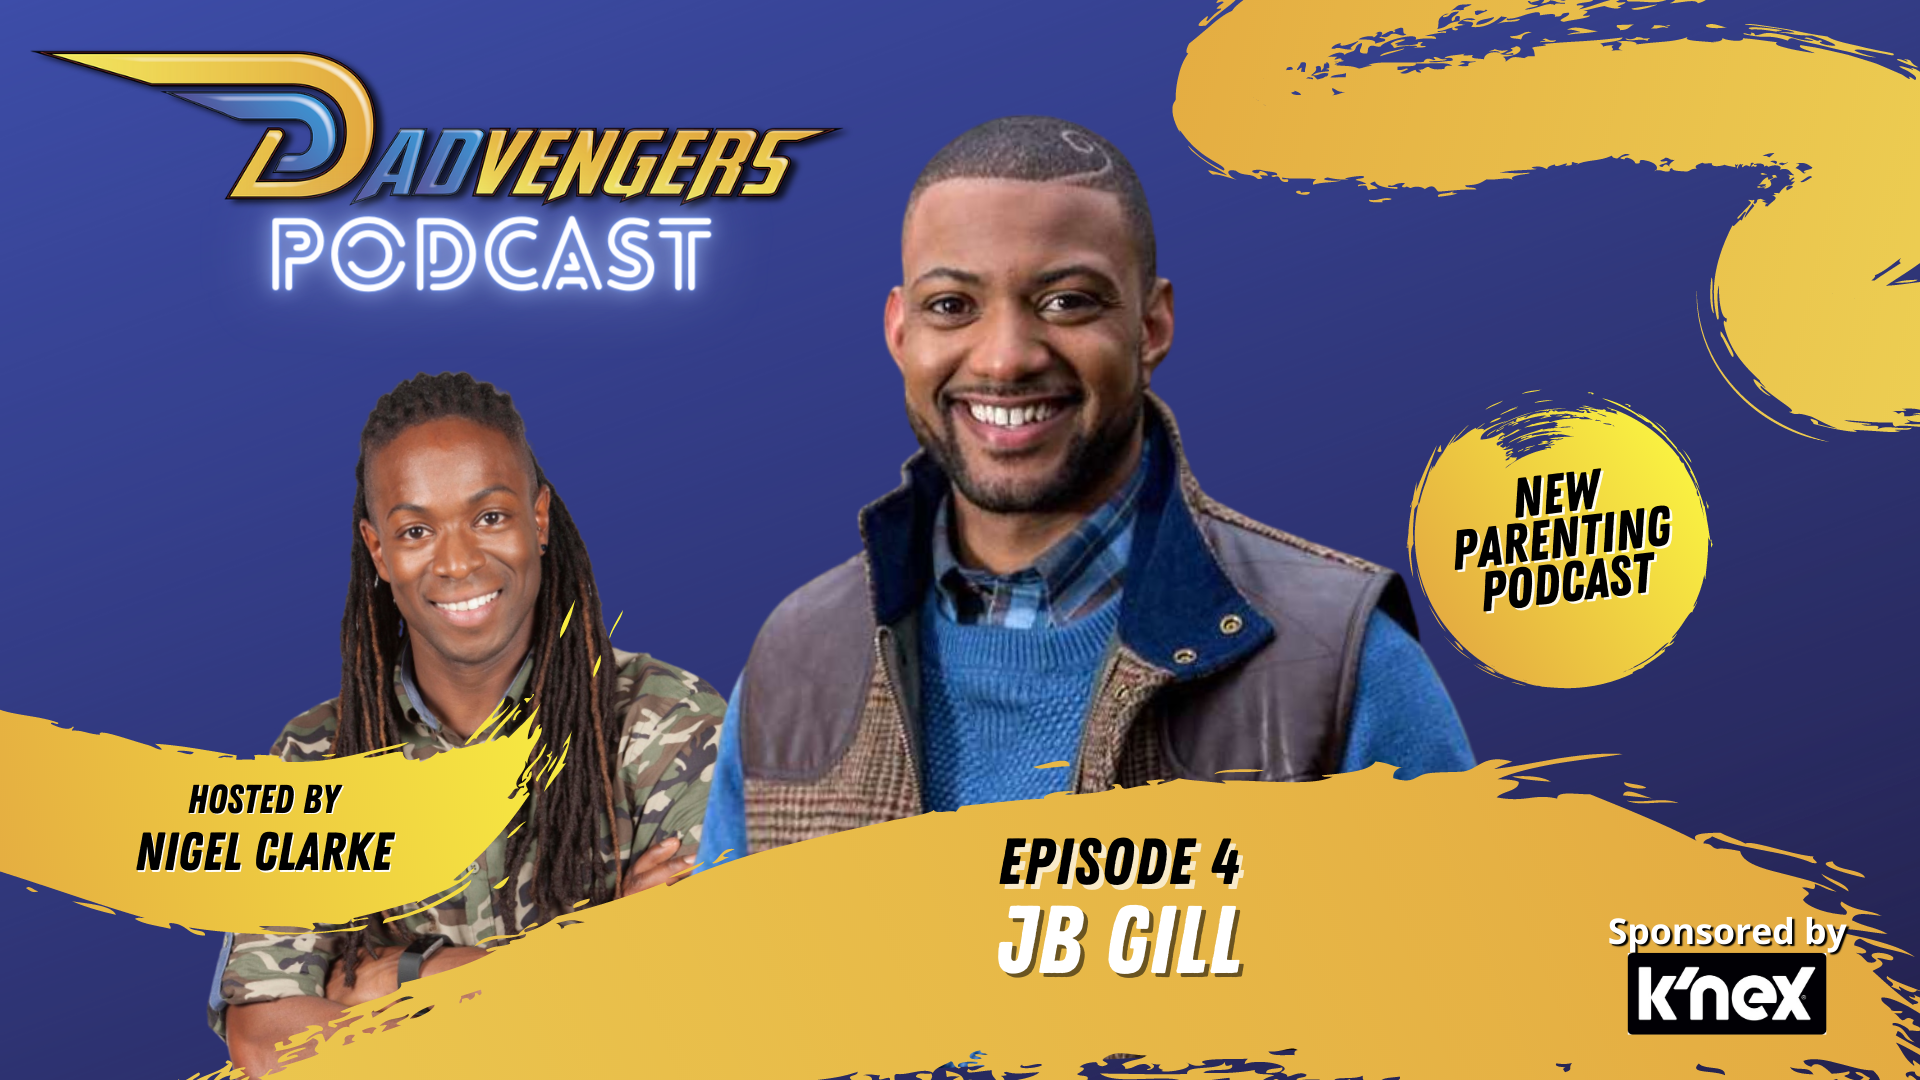 Dadvengers Podcast Ep 4 - JB Gill